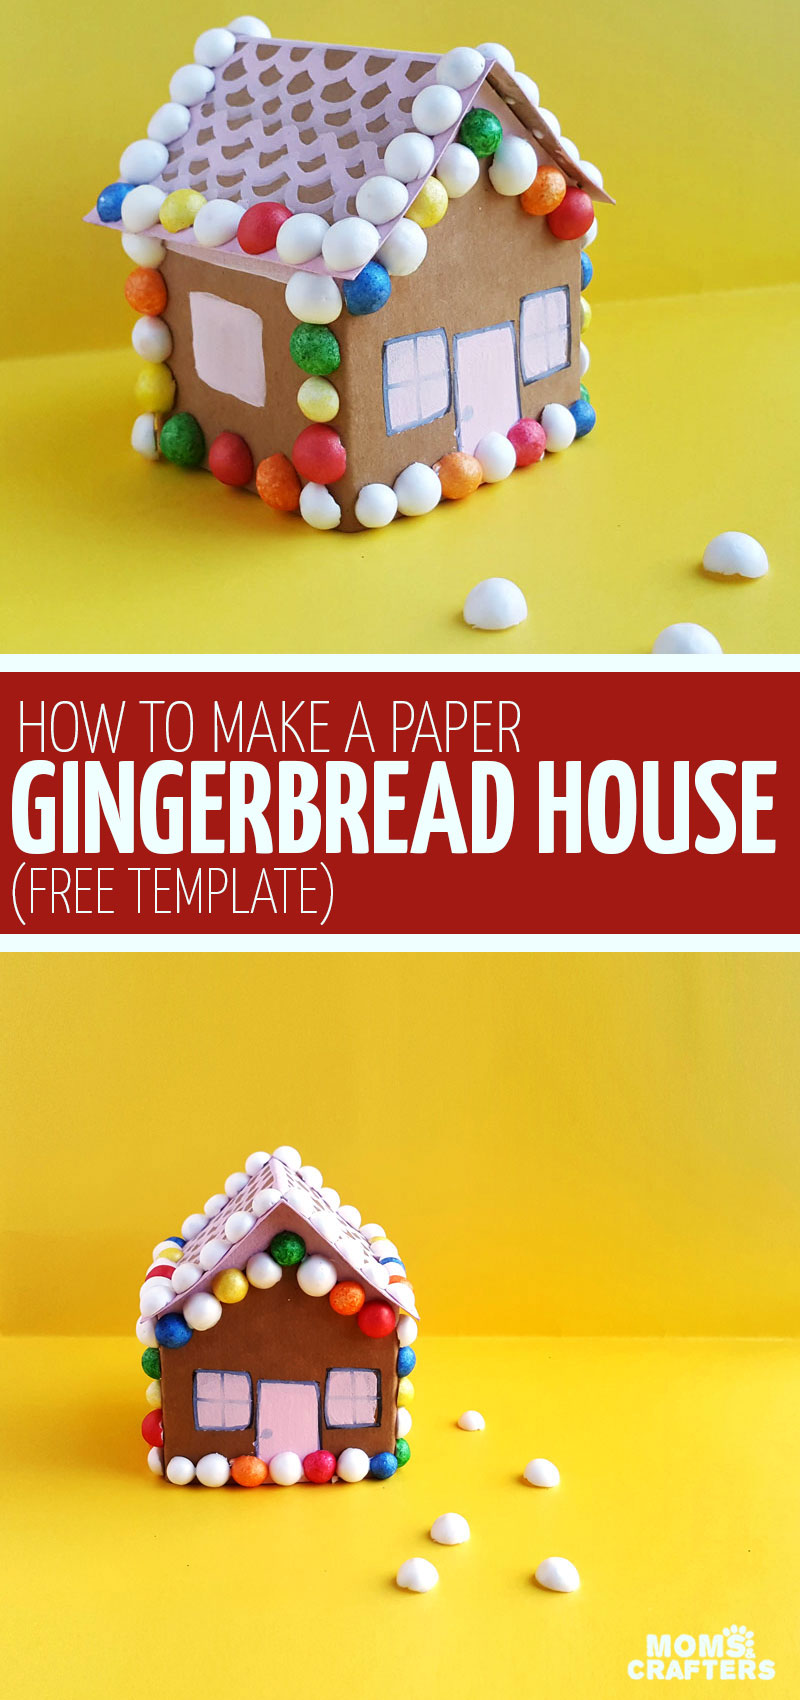 Click for the template to make this easy gingerbread house craft for kids! These easy paper houses come with a free printable paper craft template and are a fun Christmas papercraft for winter. #christmas #papercraft #paperhouses